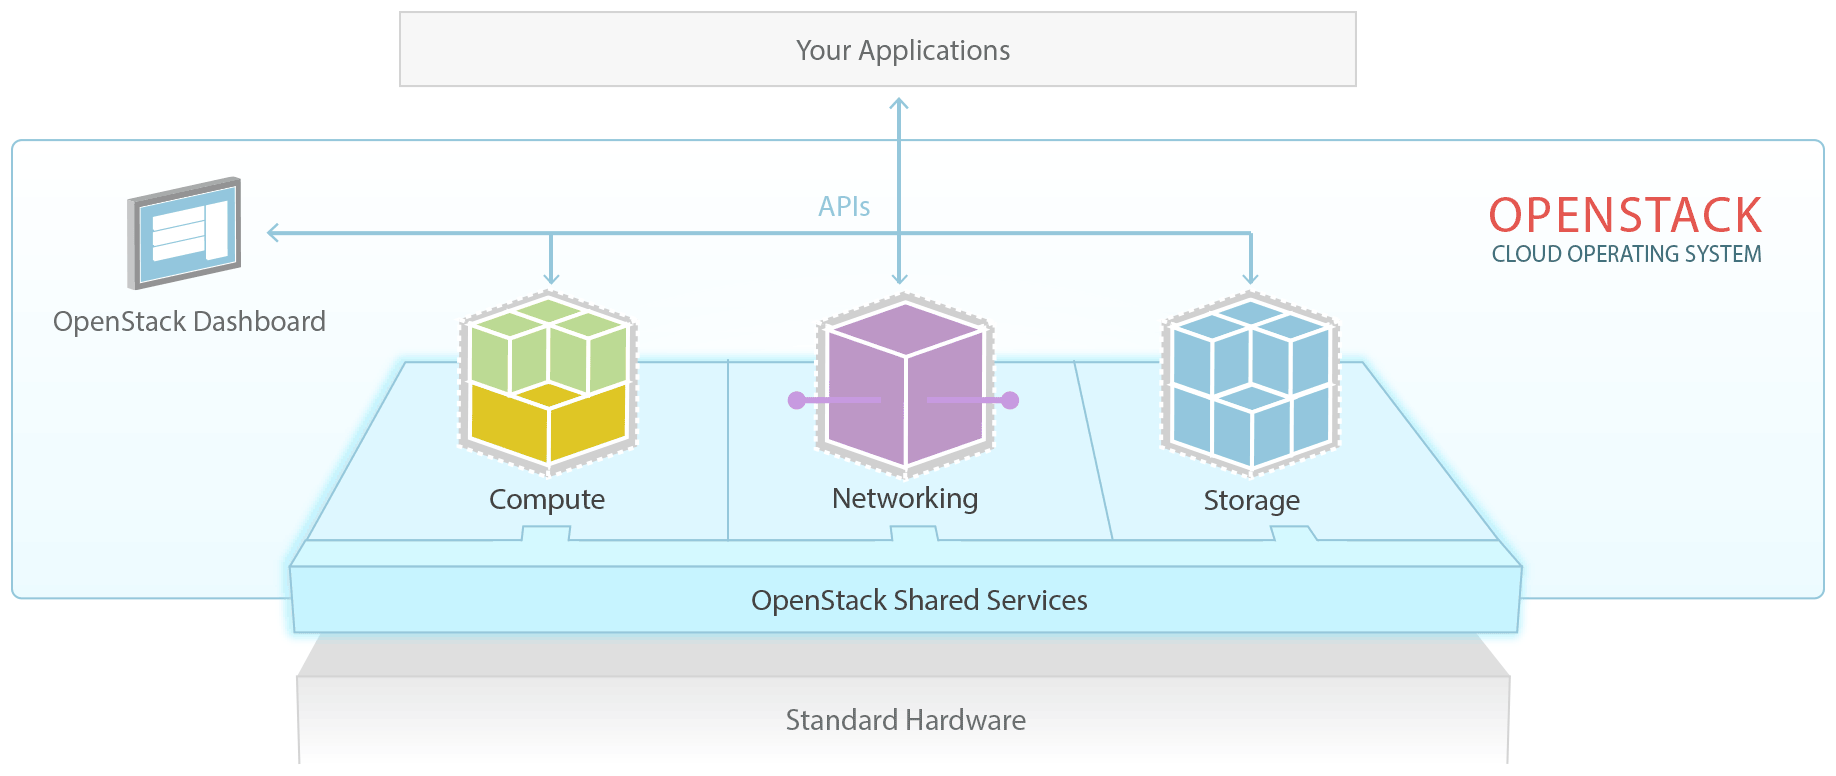 OpenStack Cloud Operating System